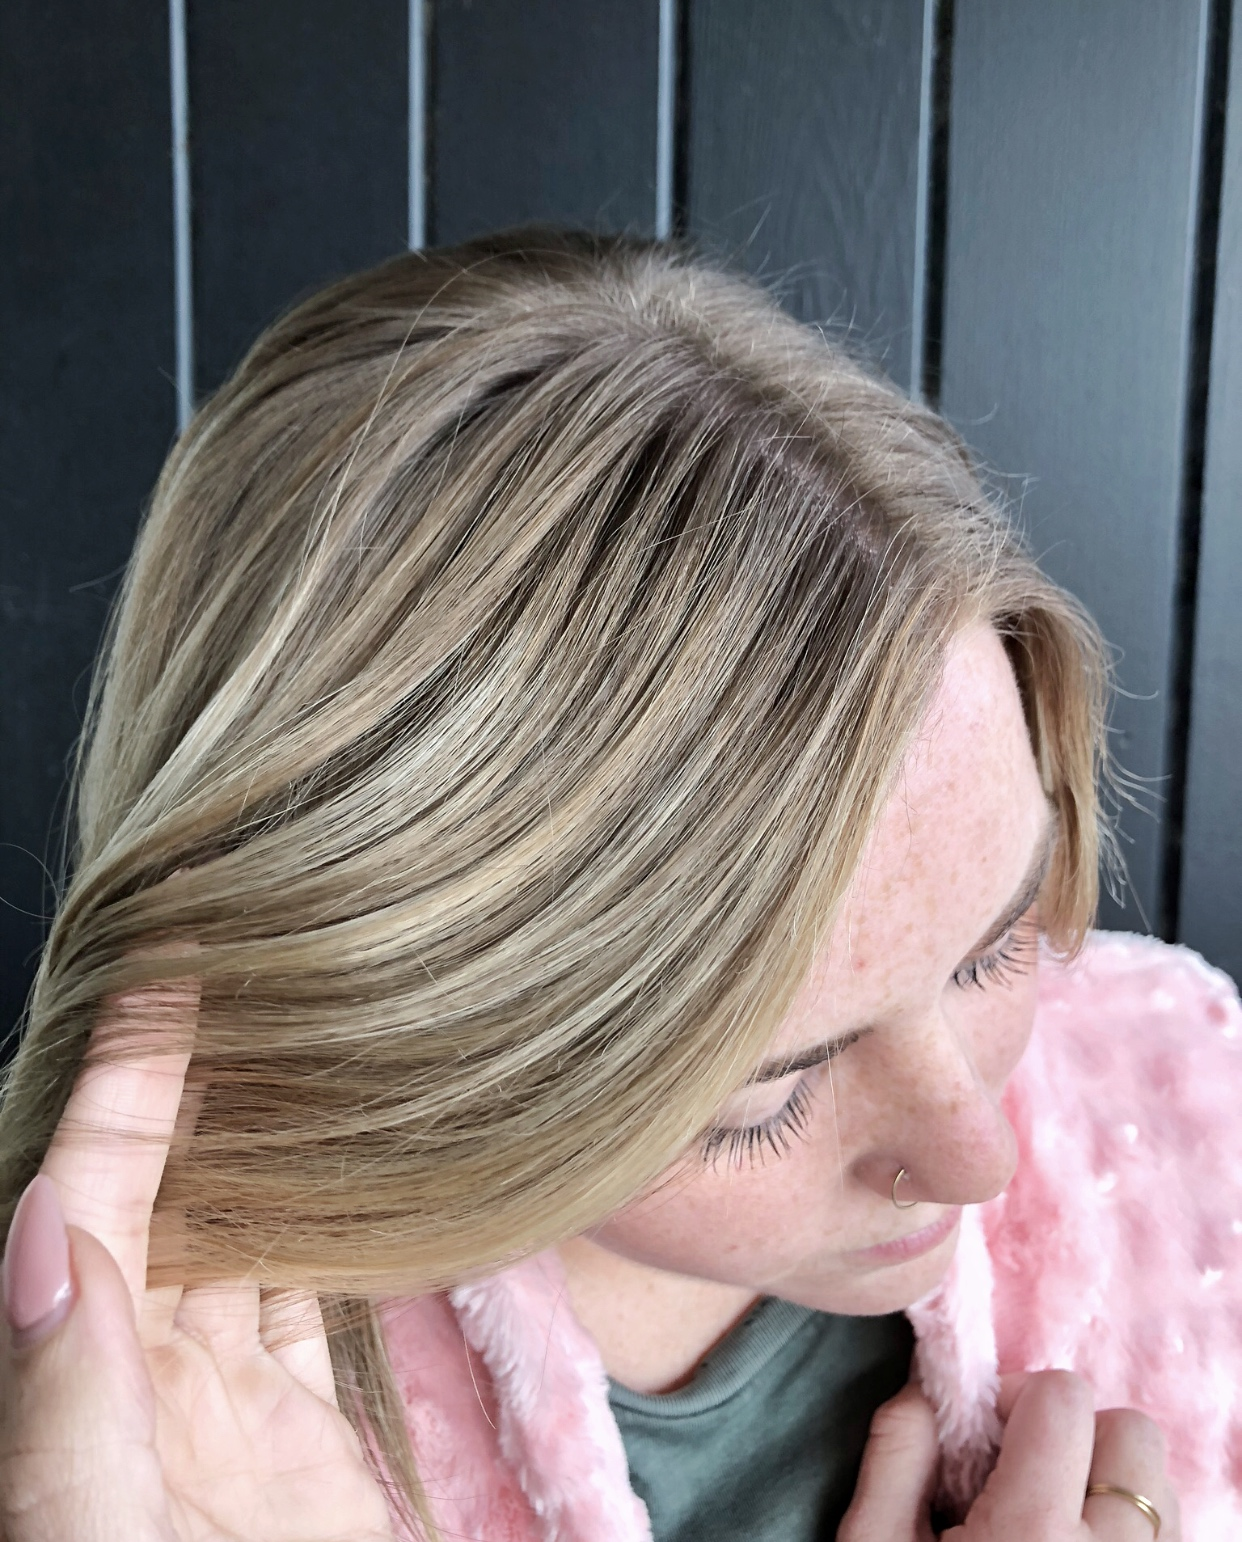 Shadow Root - As you can see here I took a section at her base and used a darker color allowing her longer time between visits and giving a better grow out process and more of a balayage look than a regular highlight.